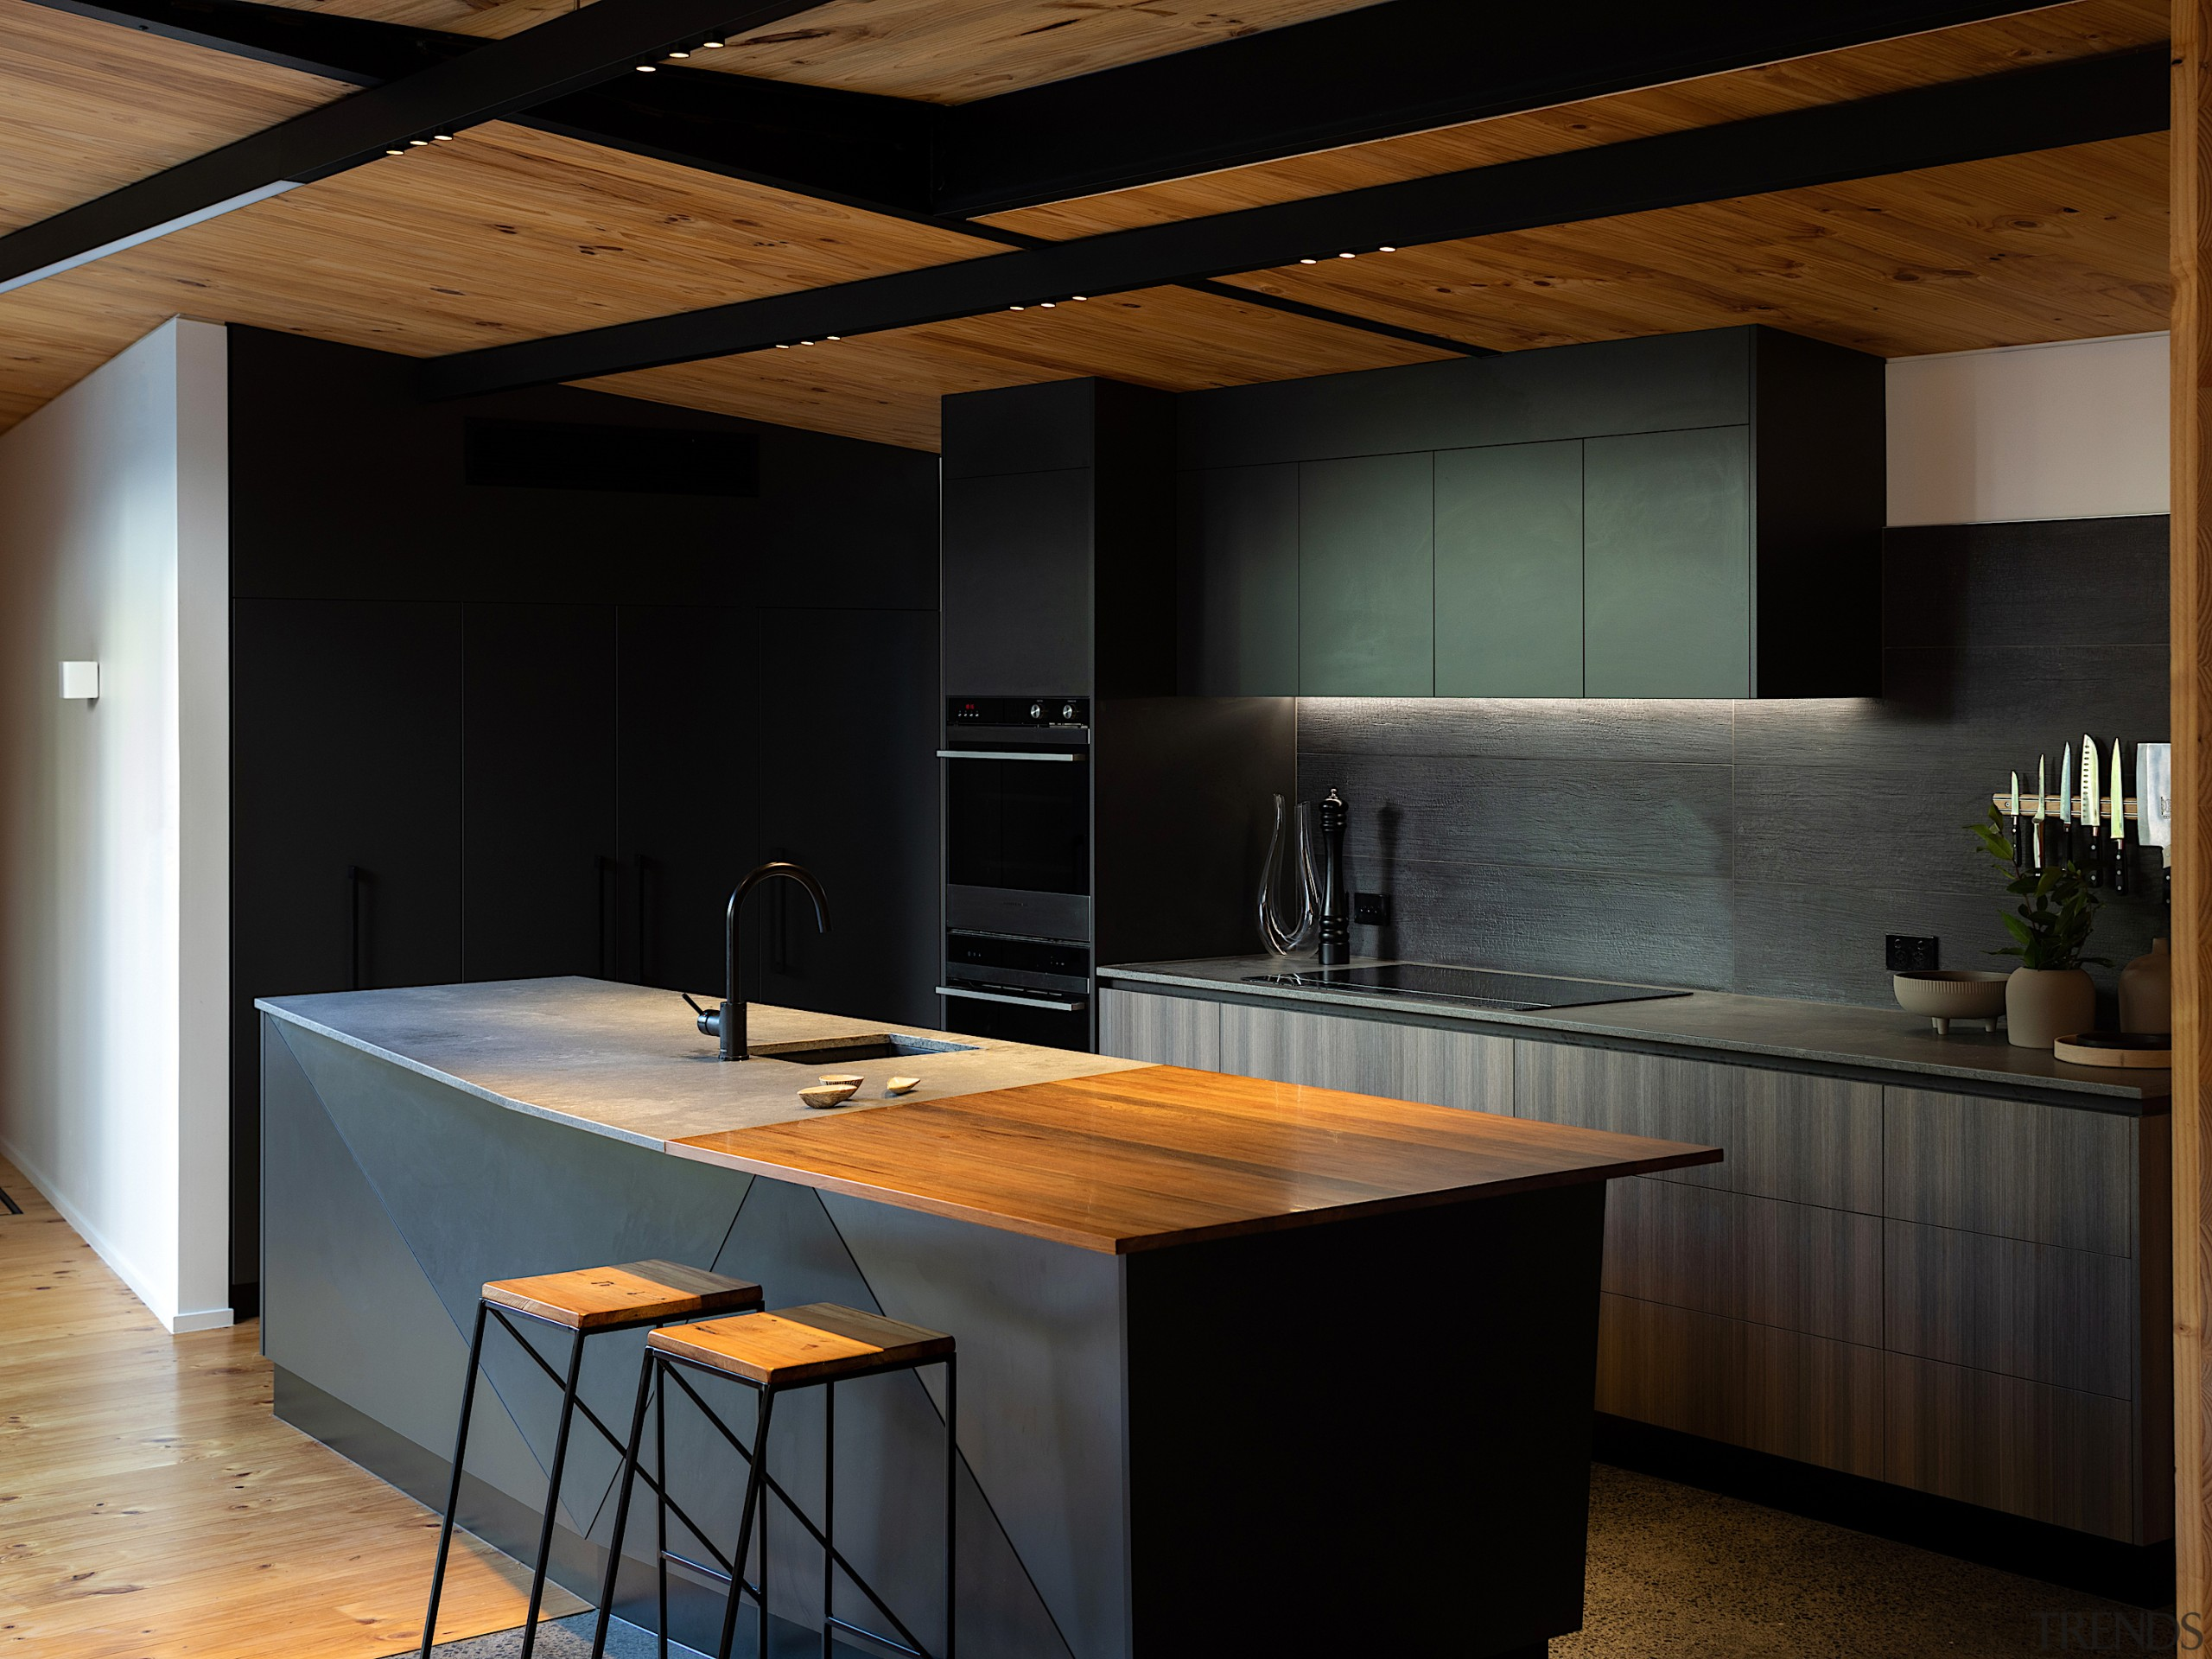 The kitchen's fractured forms reflect the exterior's western black